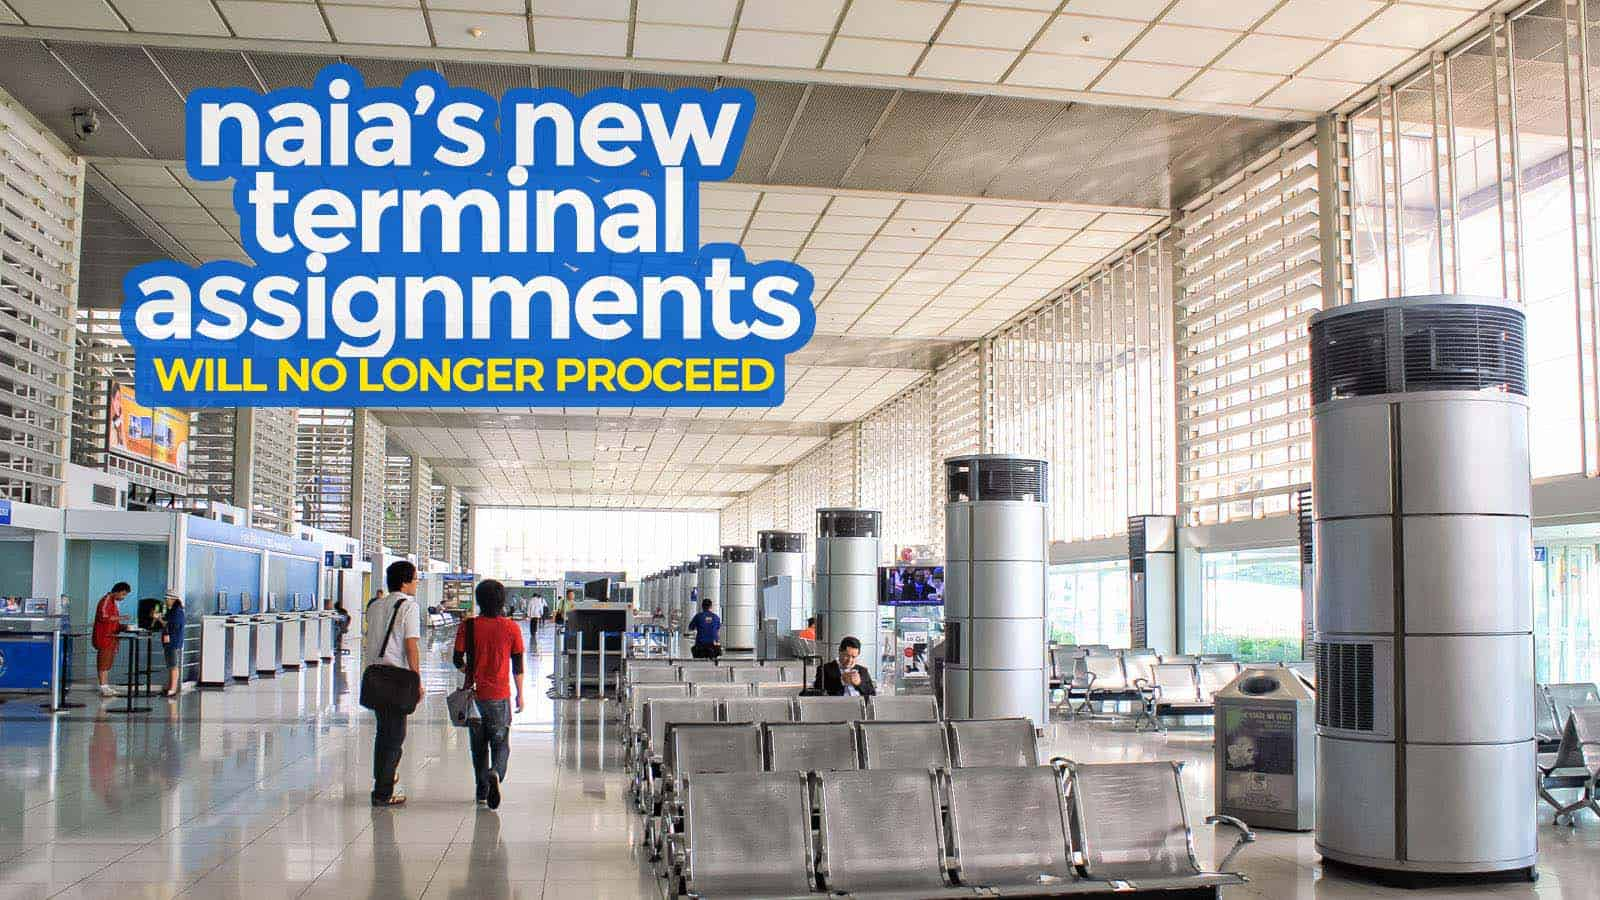 MANILA AIRPORT: New NAIA Terminal Assignments will NO LONGER Proceed